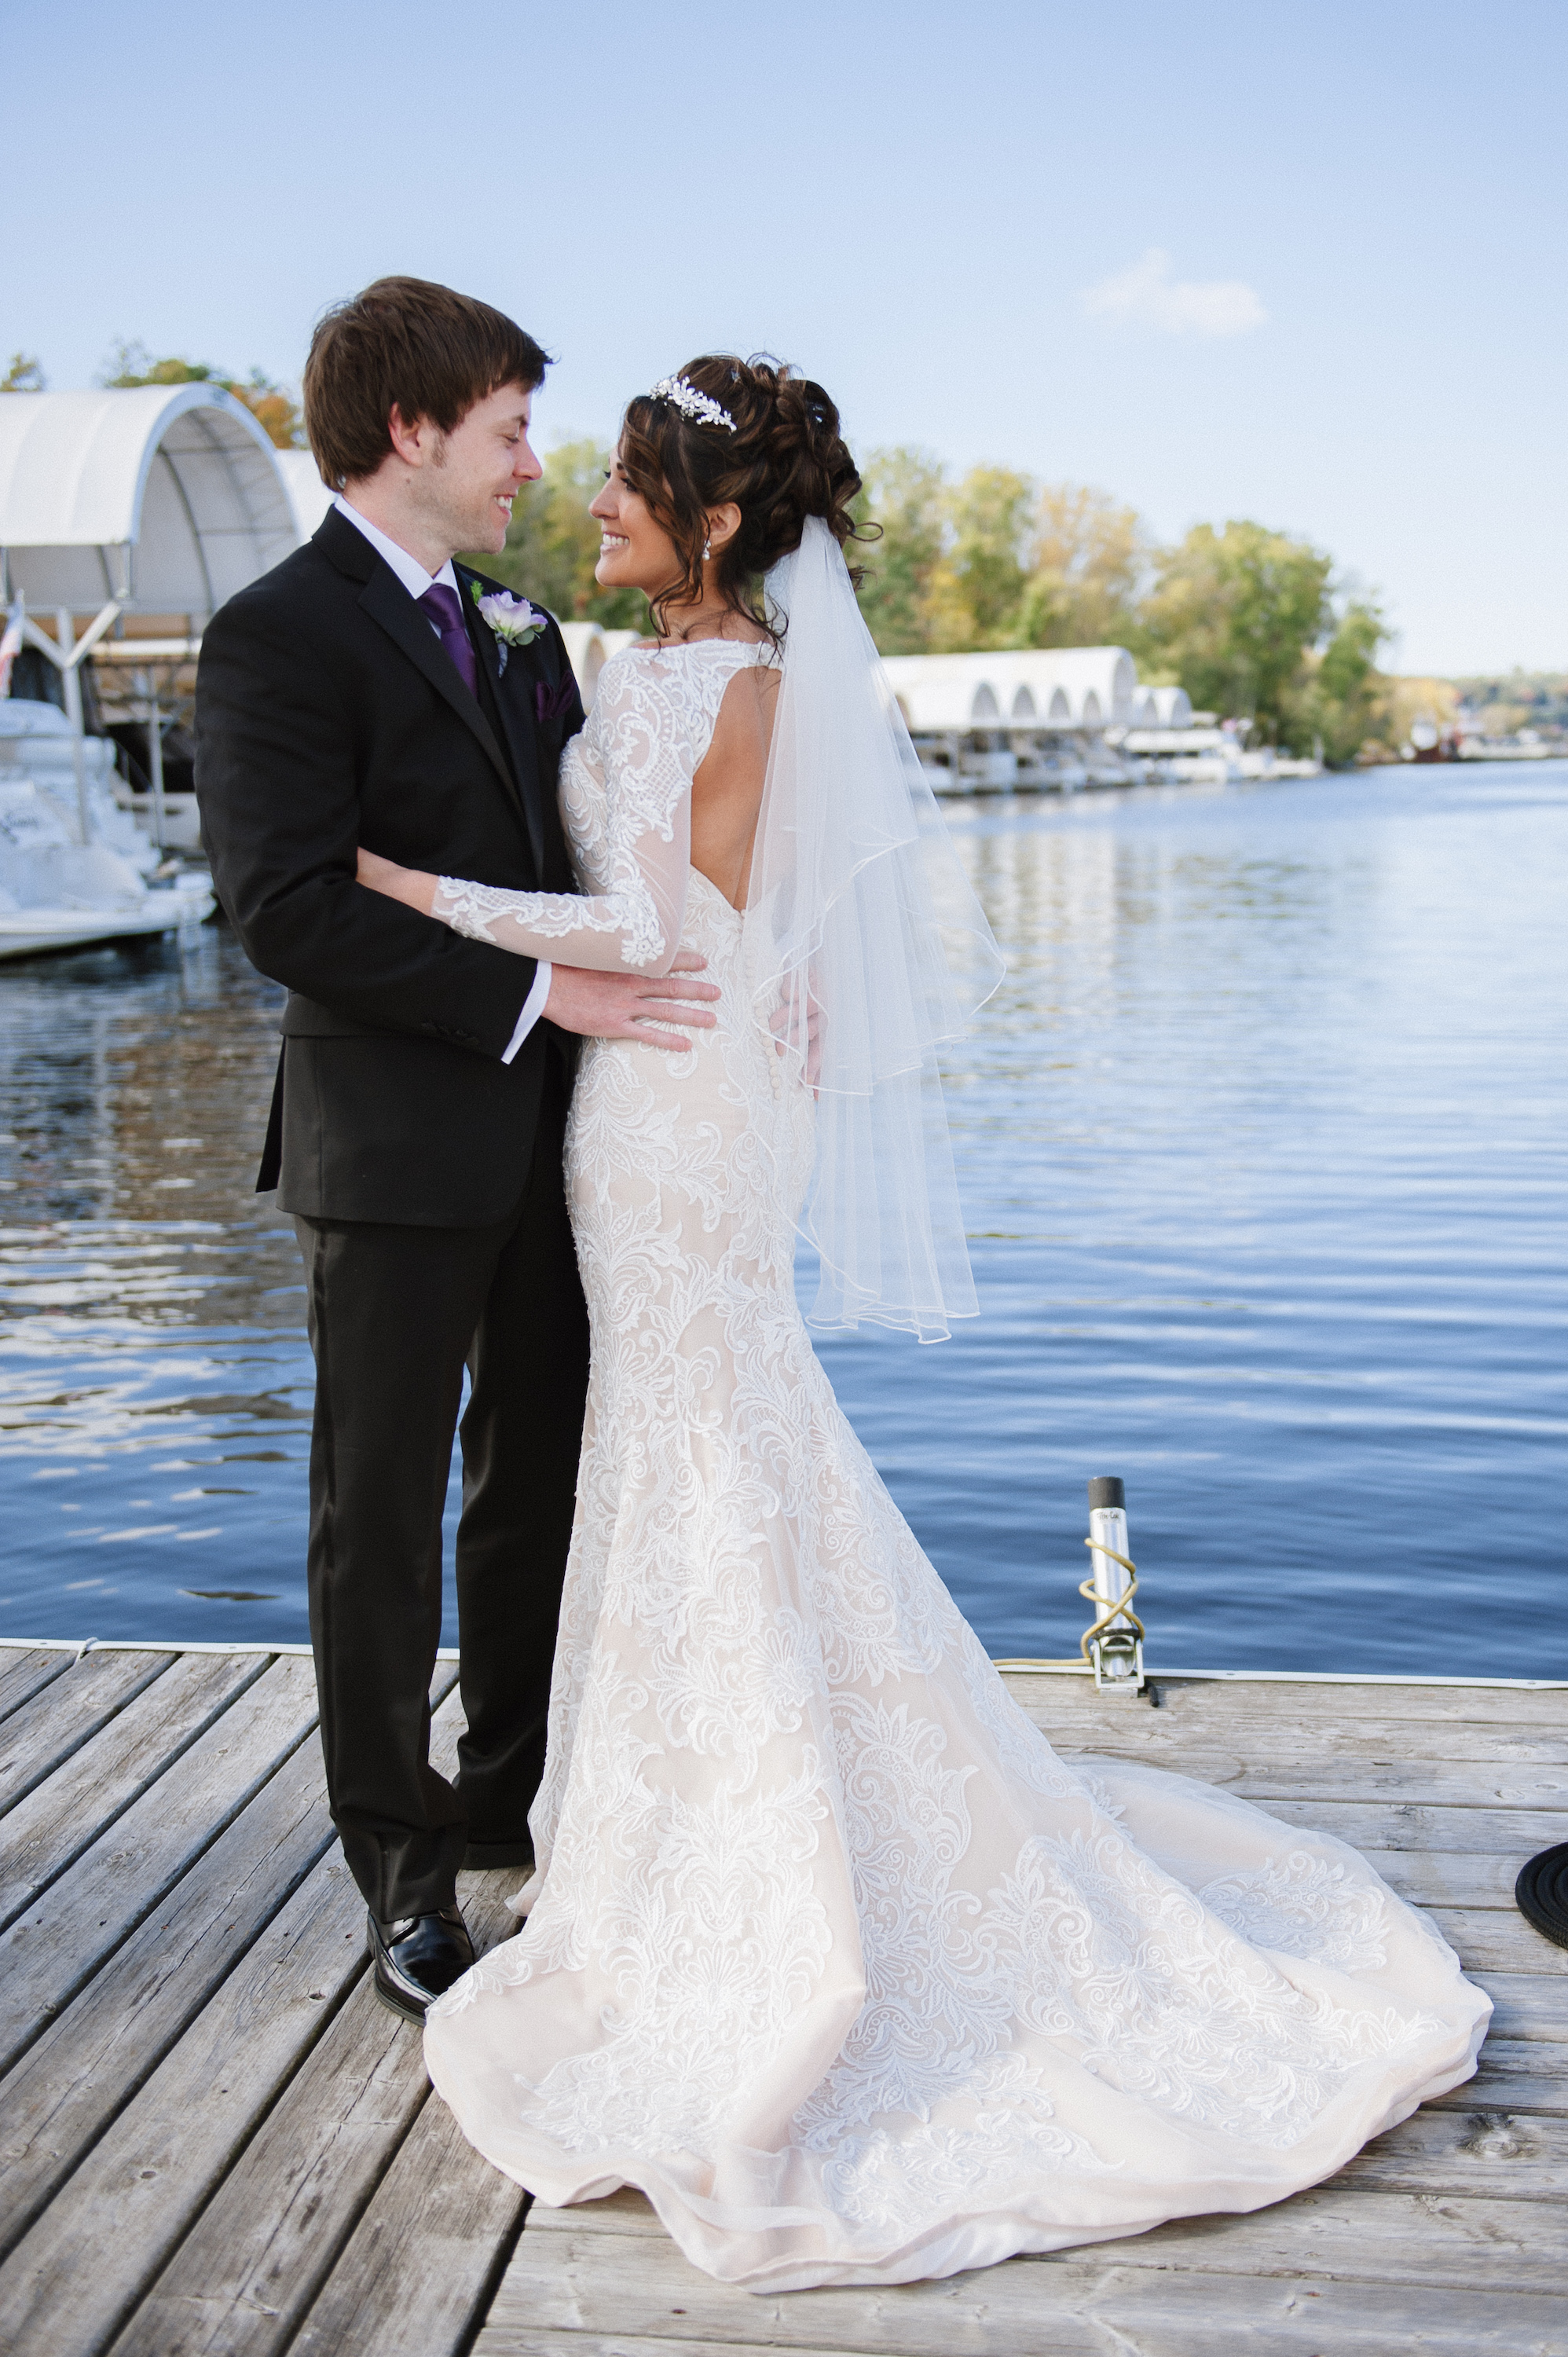 bride and groom portraits on the dock   St. Croix river   tiara bridal hair piece   Dillinger Studios Minneapolis Photographer   Mexican American fusion wedding   Sixpence Events & Planning Minnesota wedding planner .jpg